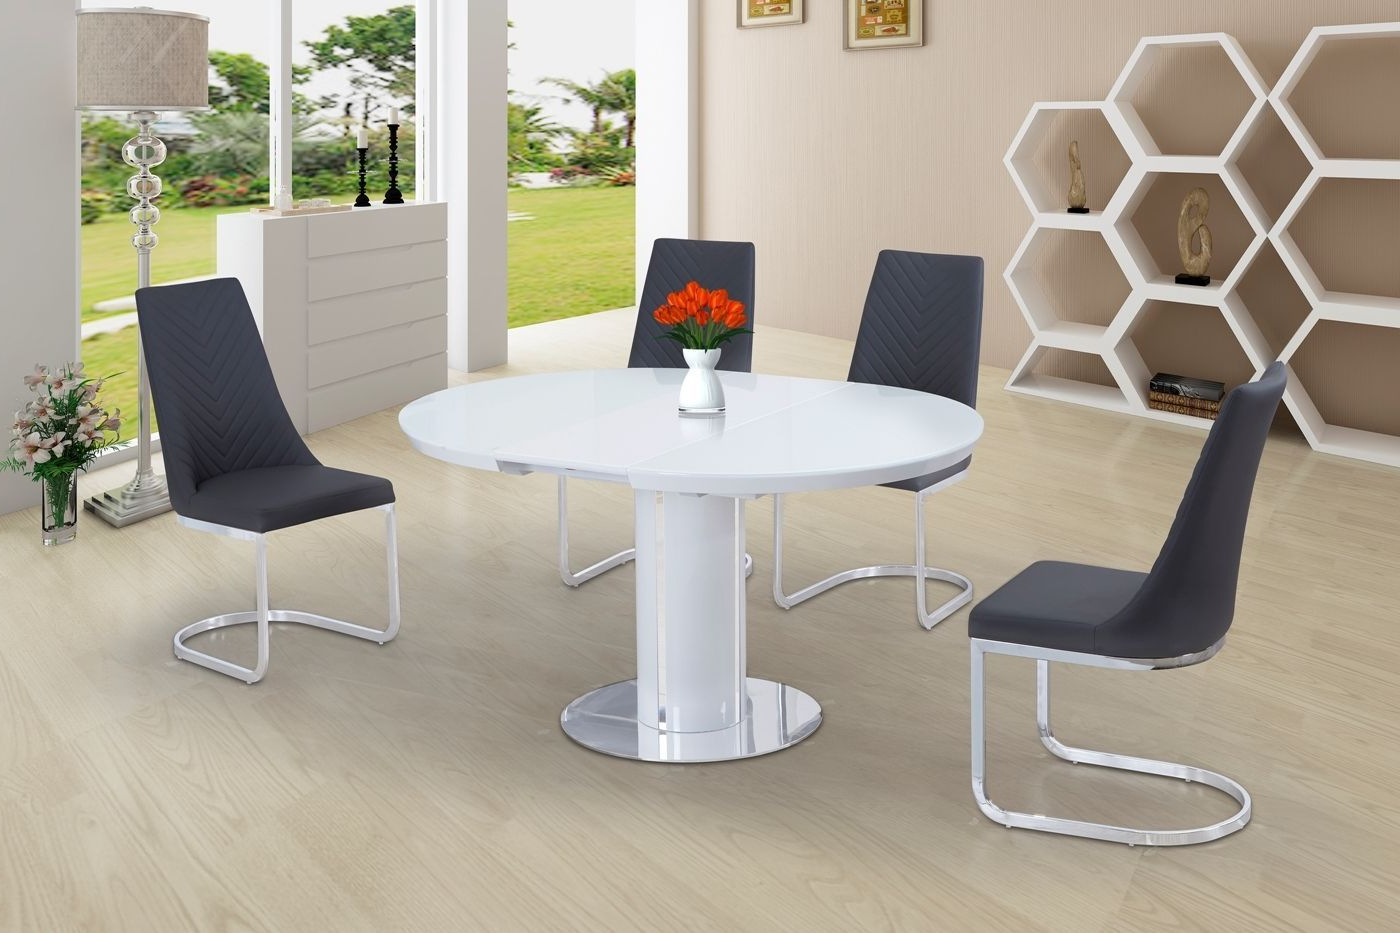 Eclipse Round / Oval Gloss & Glass Extending 110 To 145 Cm Dining Table – White Inside Well Known Eclipse Dining Tables (View 9 of 30)